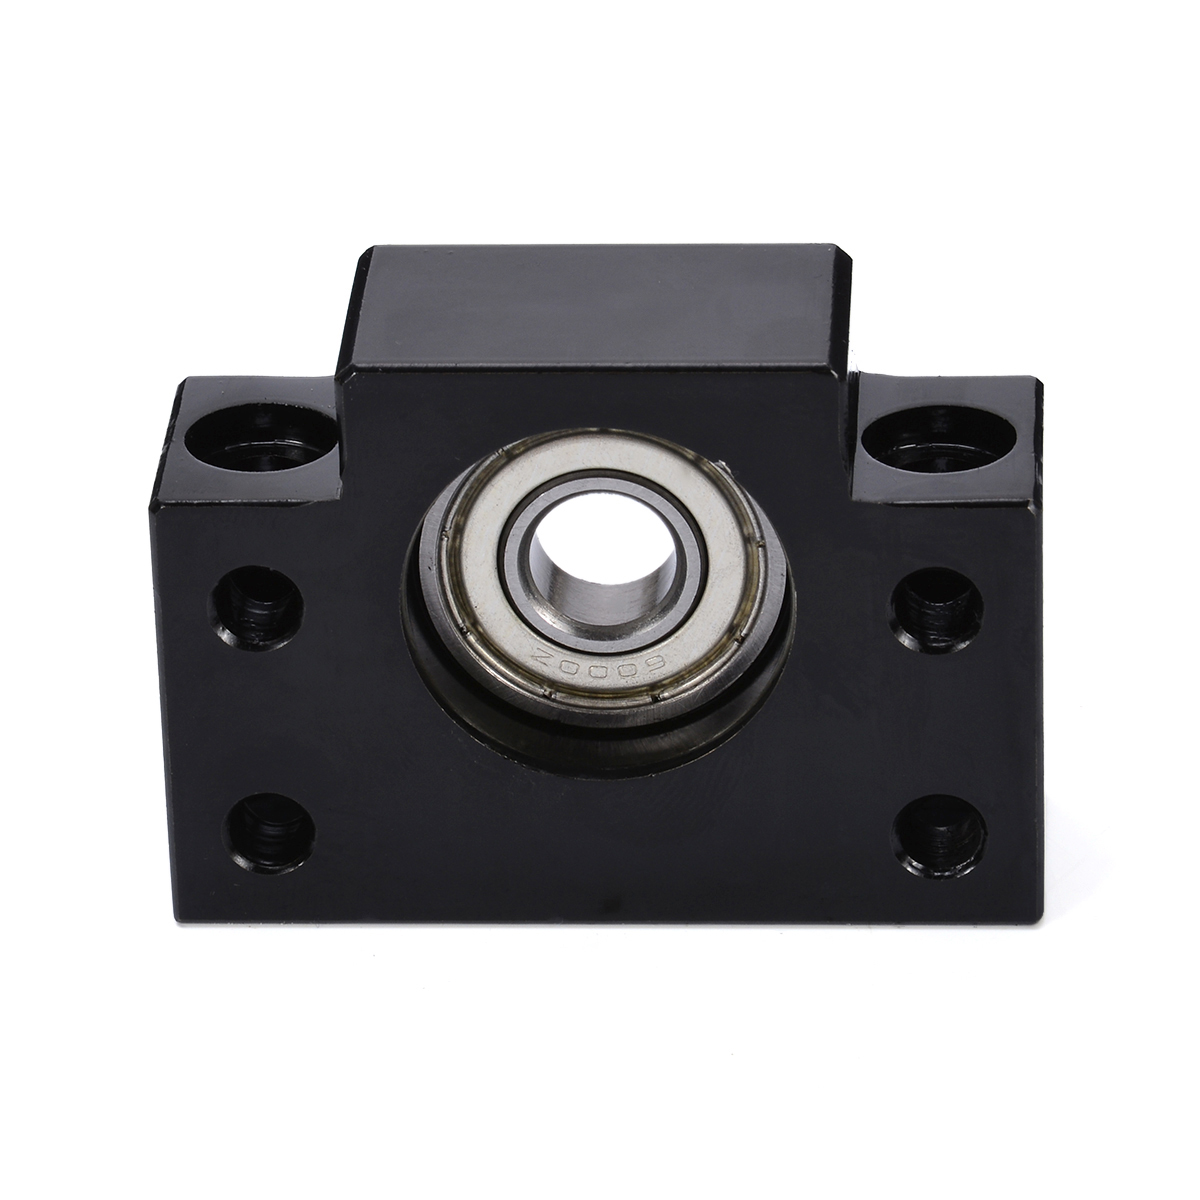 New High Efficiency SFU1605 BK12 BF12 Ball Screw Support 45 Steel w/ Coupler + Lock Nuts Clasped For Ballscrew 1605